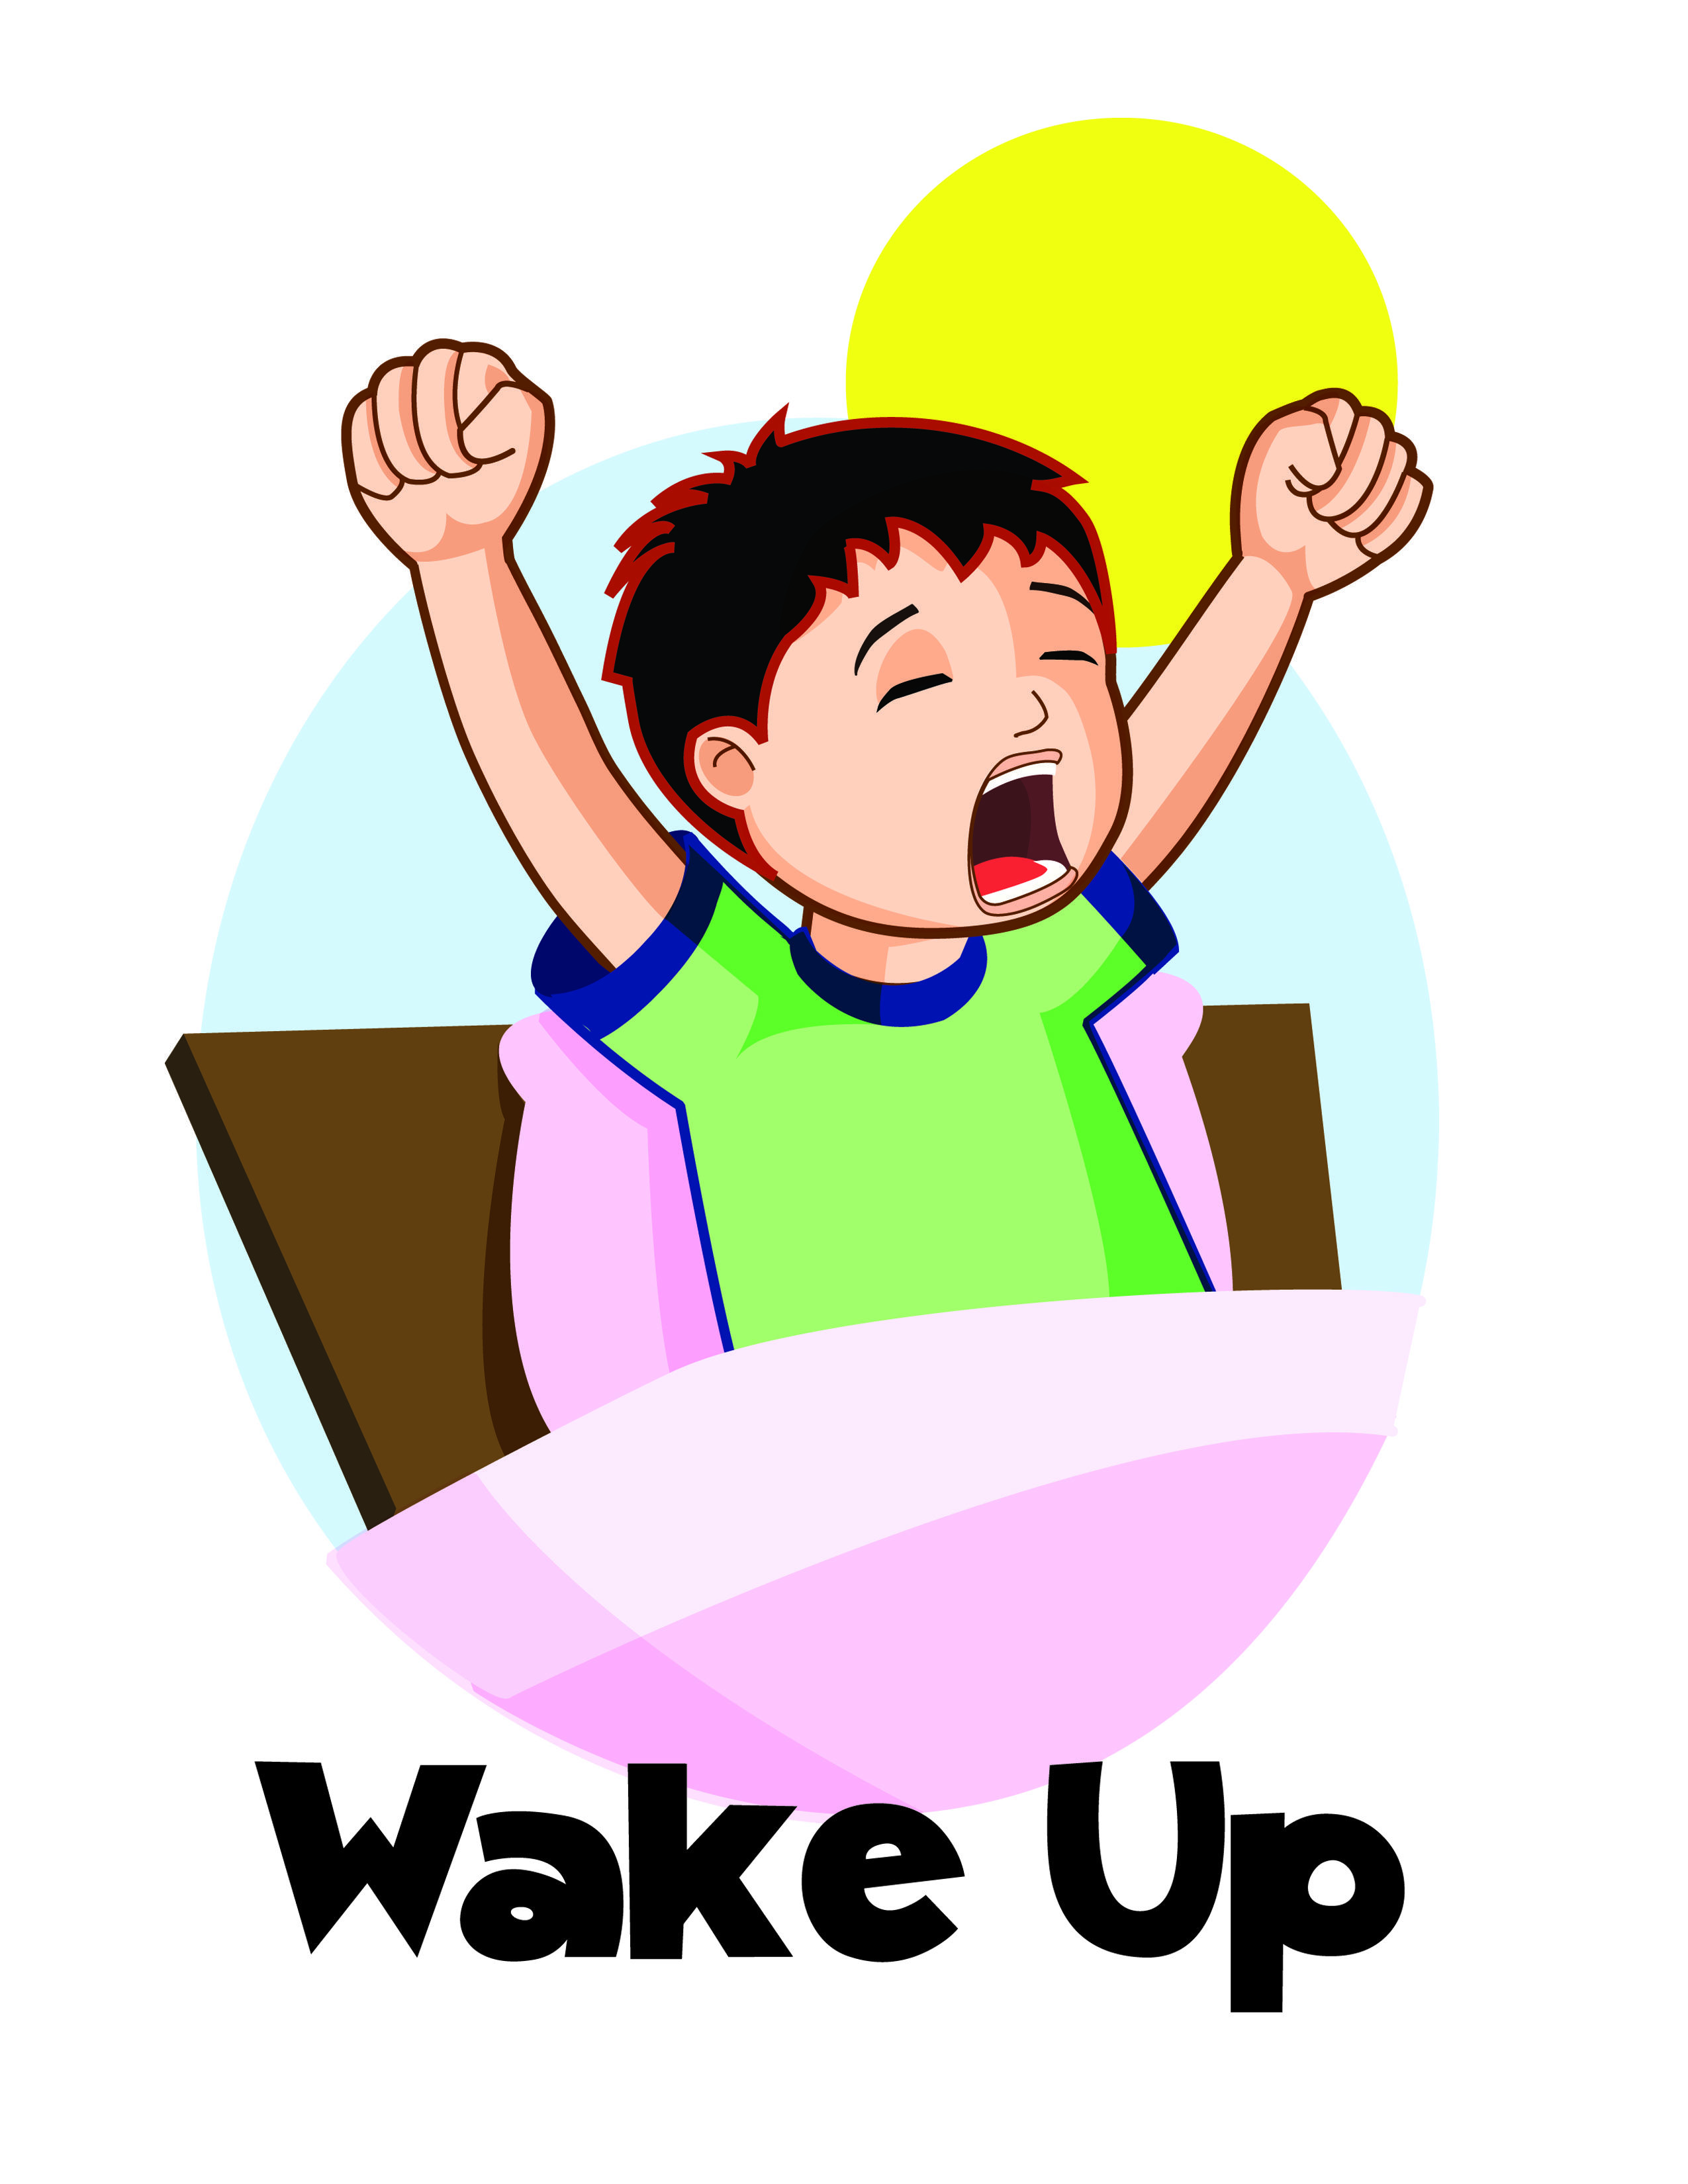 small resolution of 11 wake up clip art free cliparts that you can download to you